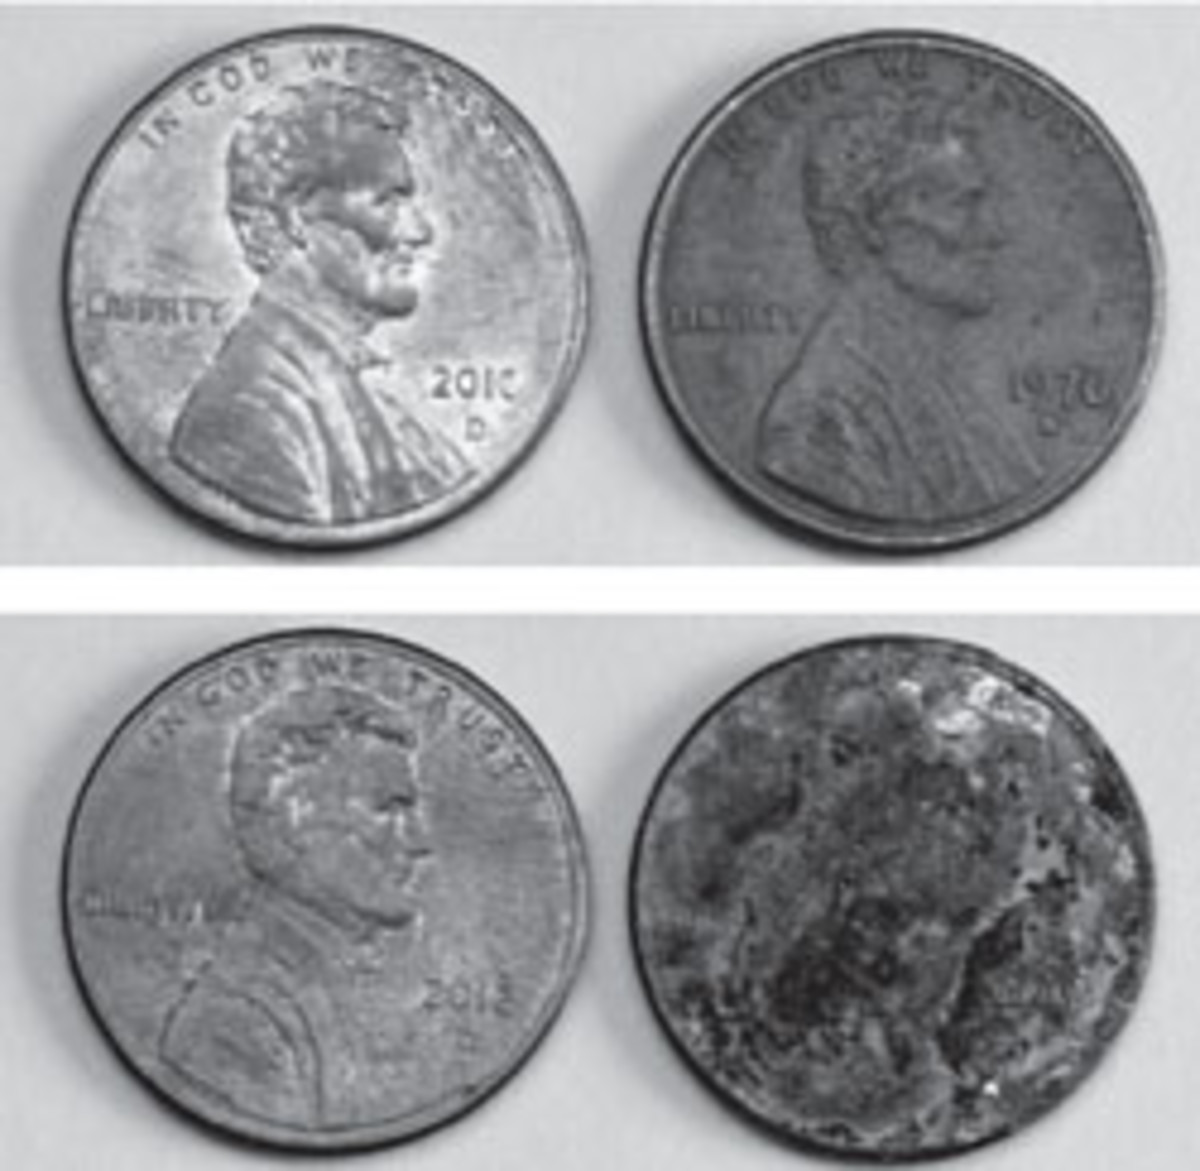 Lincoln Cents